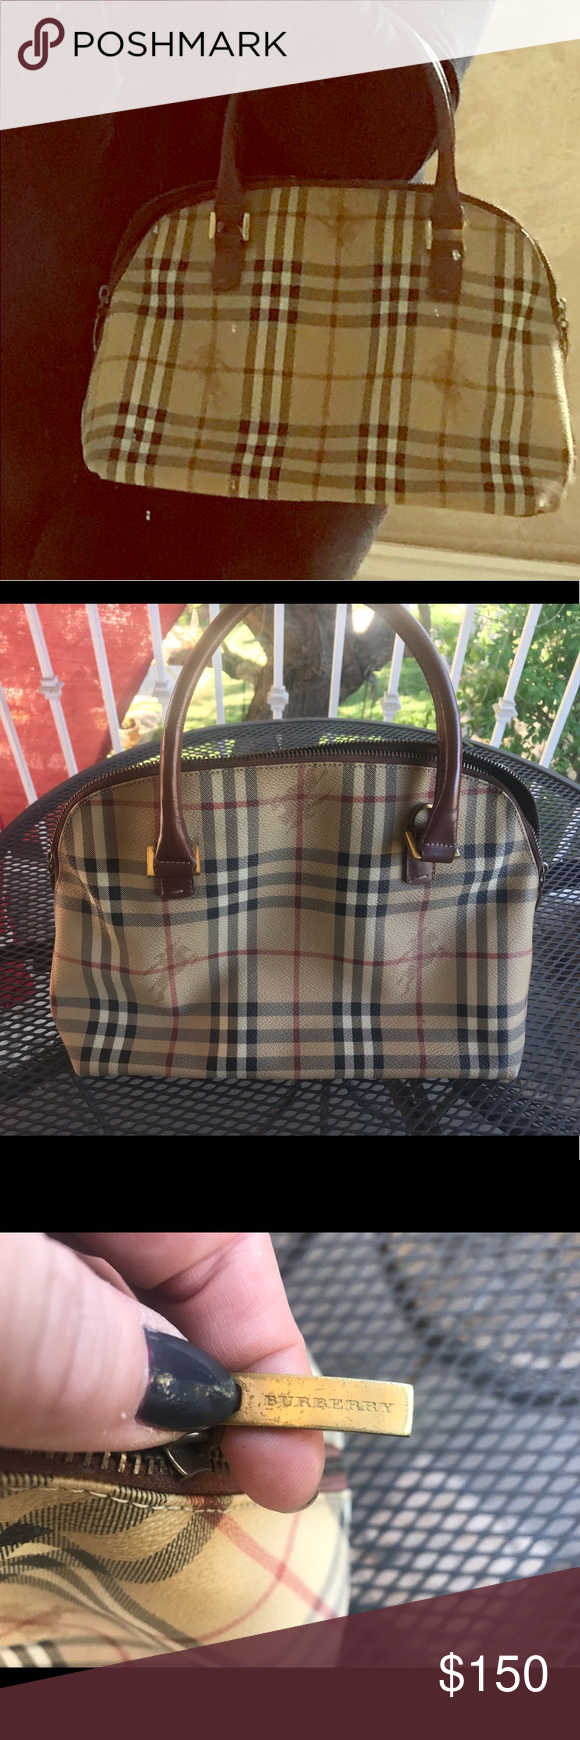 Used Authentic Burberry Handbags